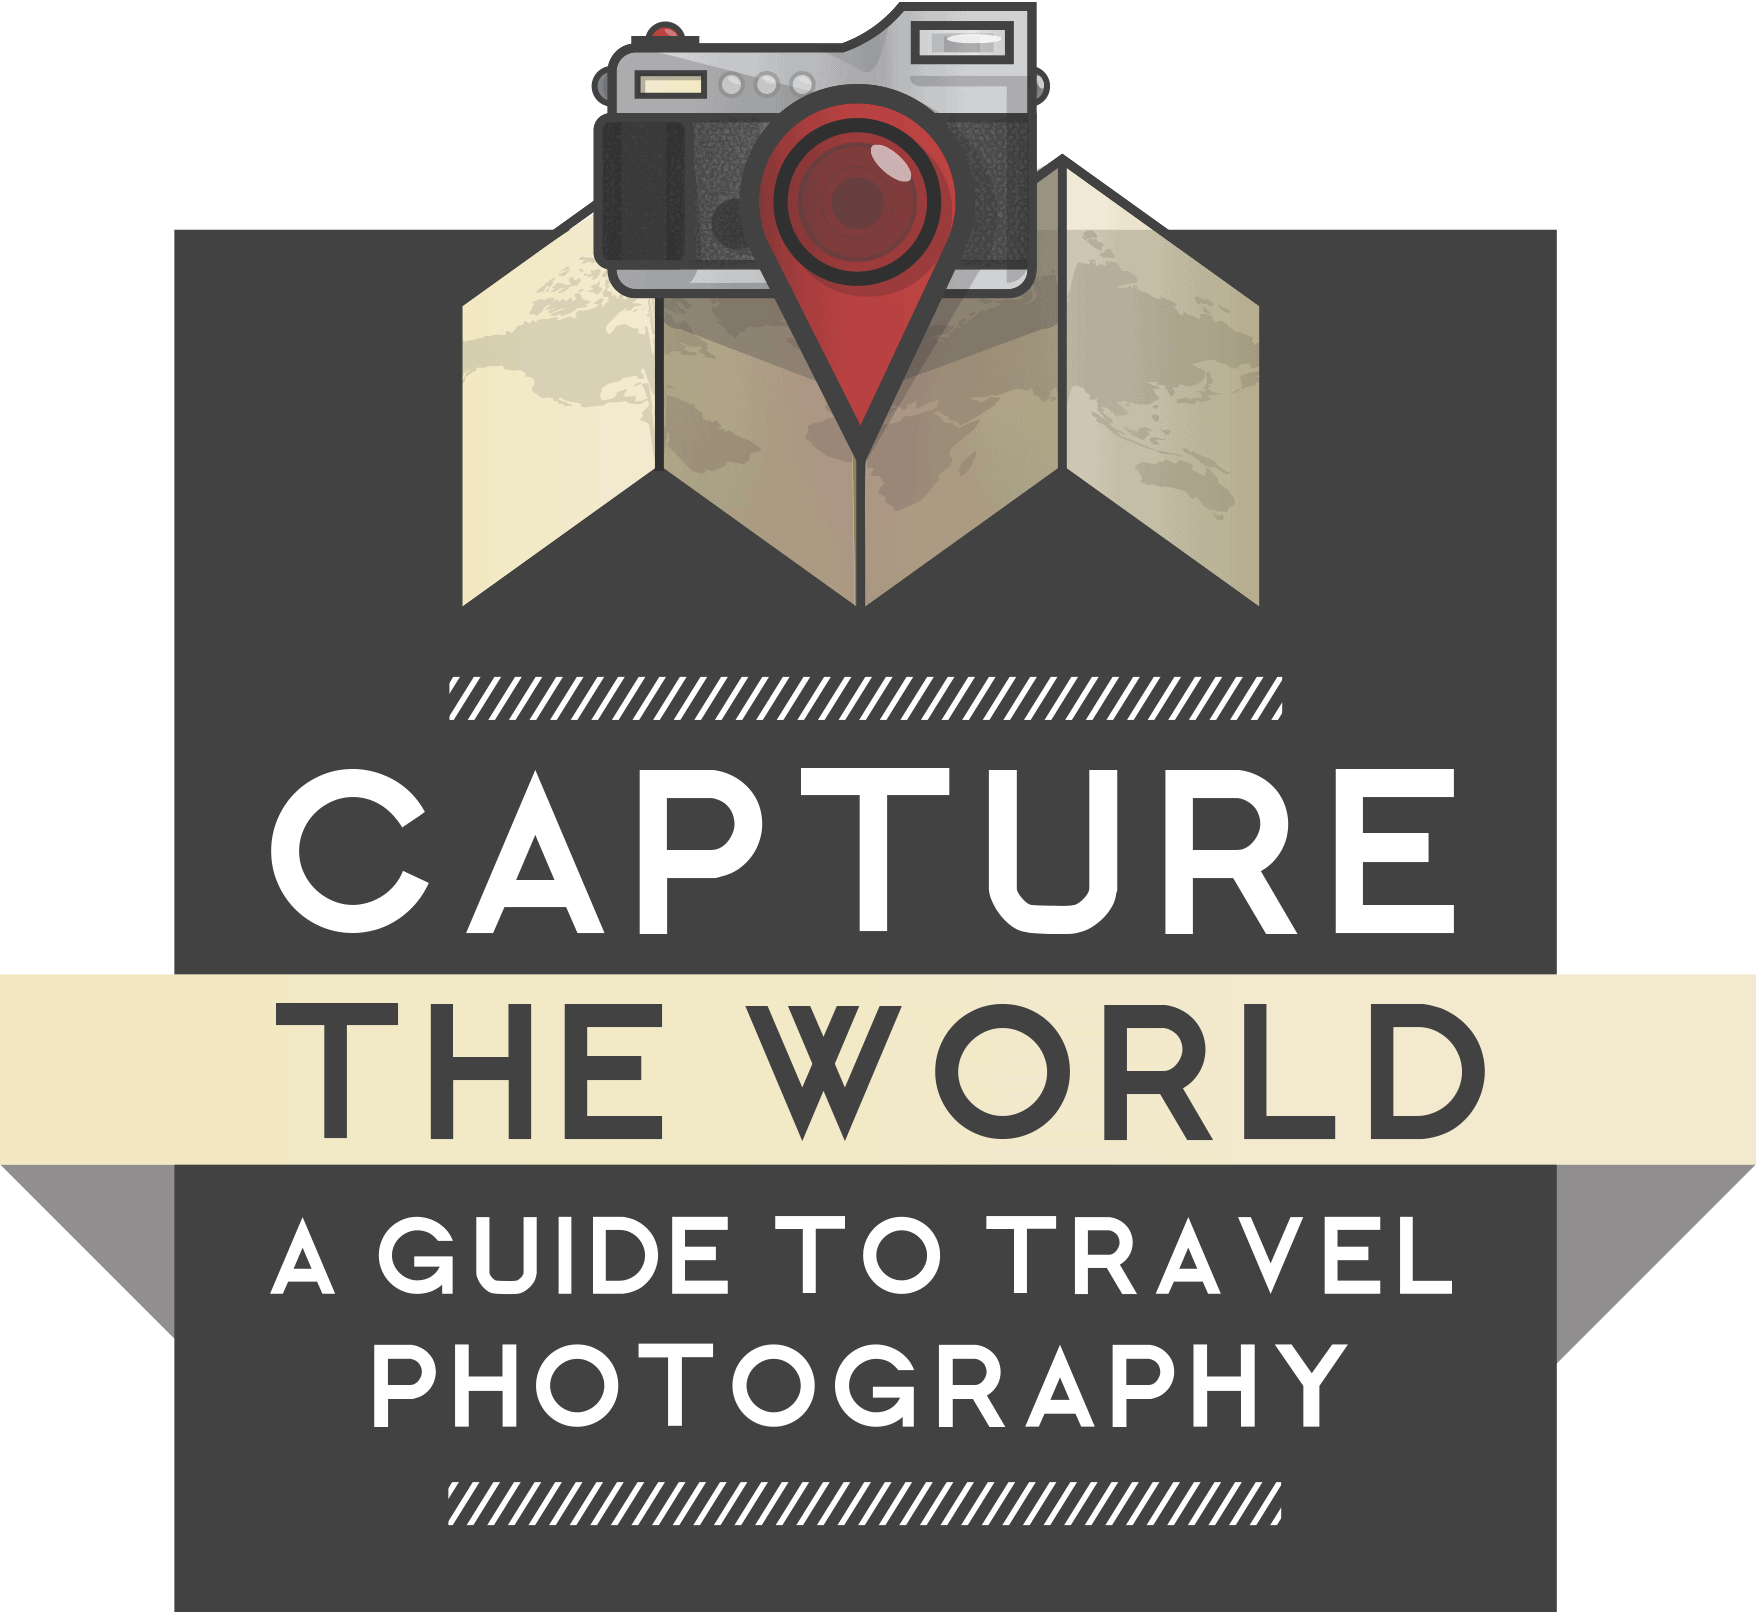 Capture the World: A Guide to Travel Photography